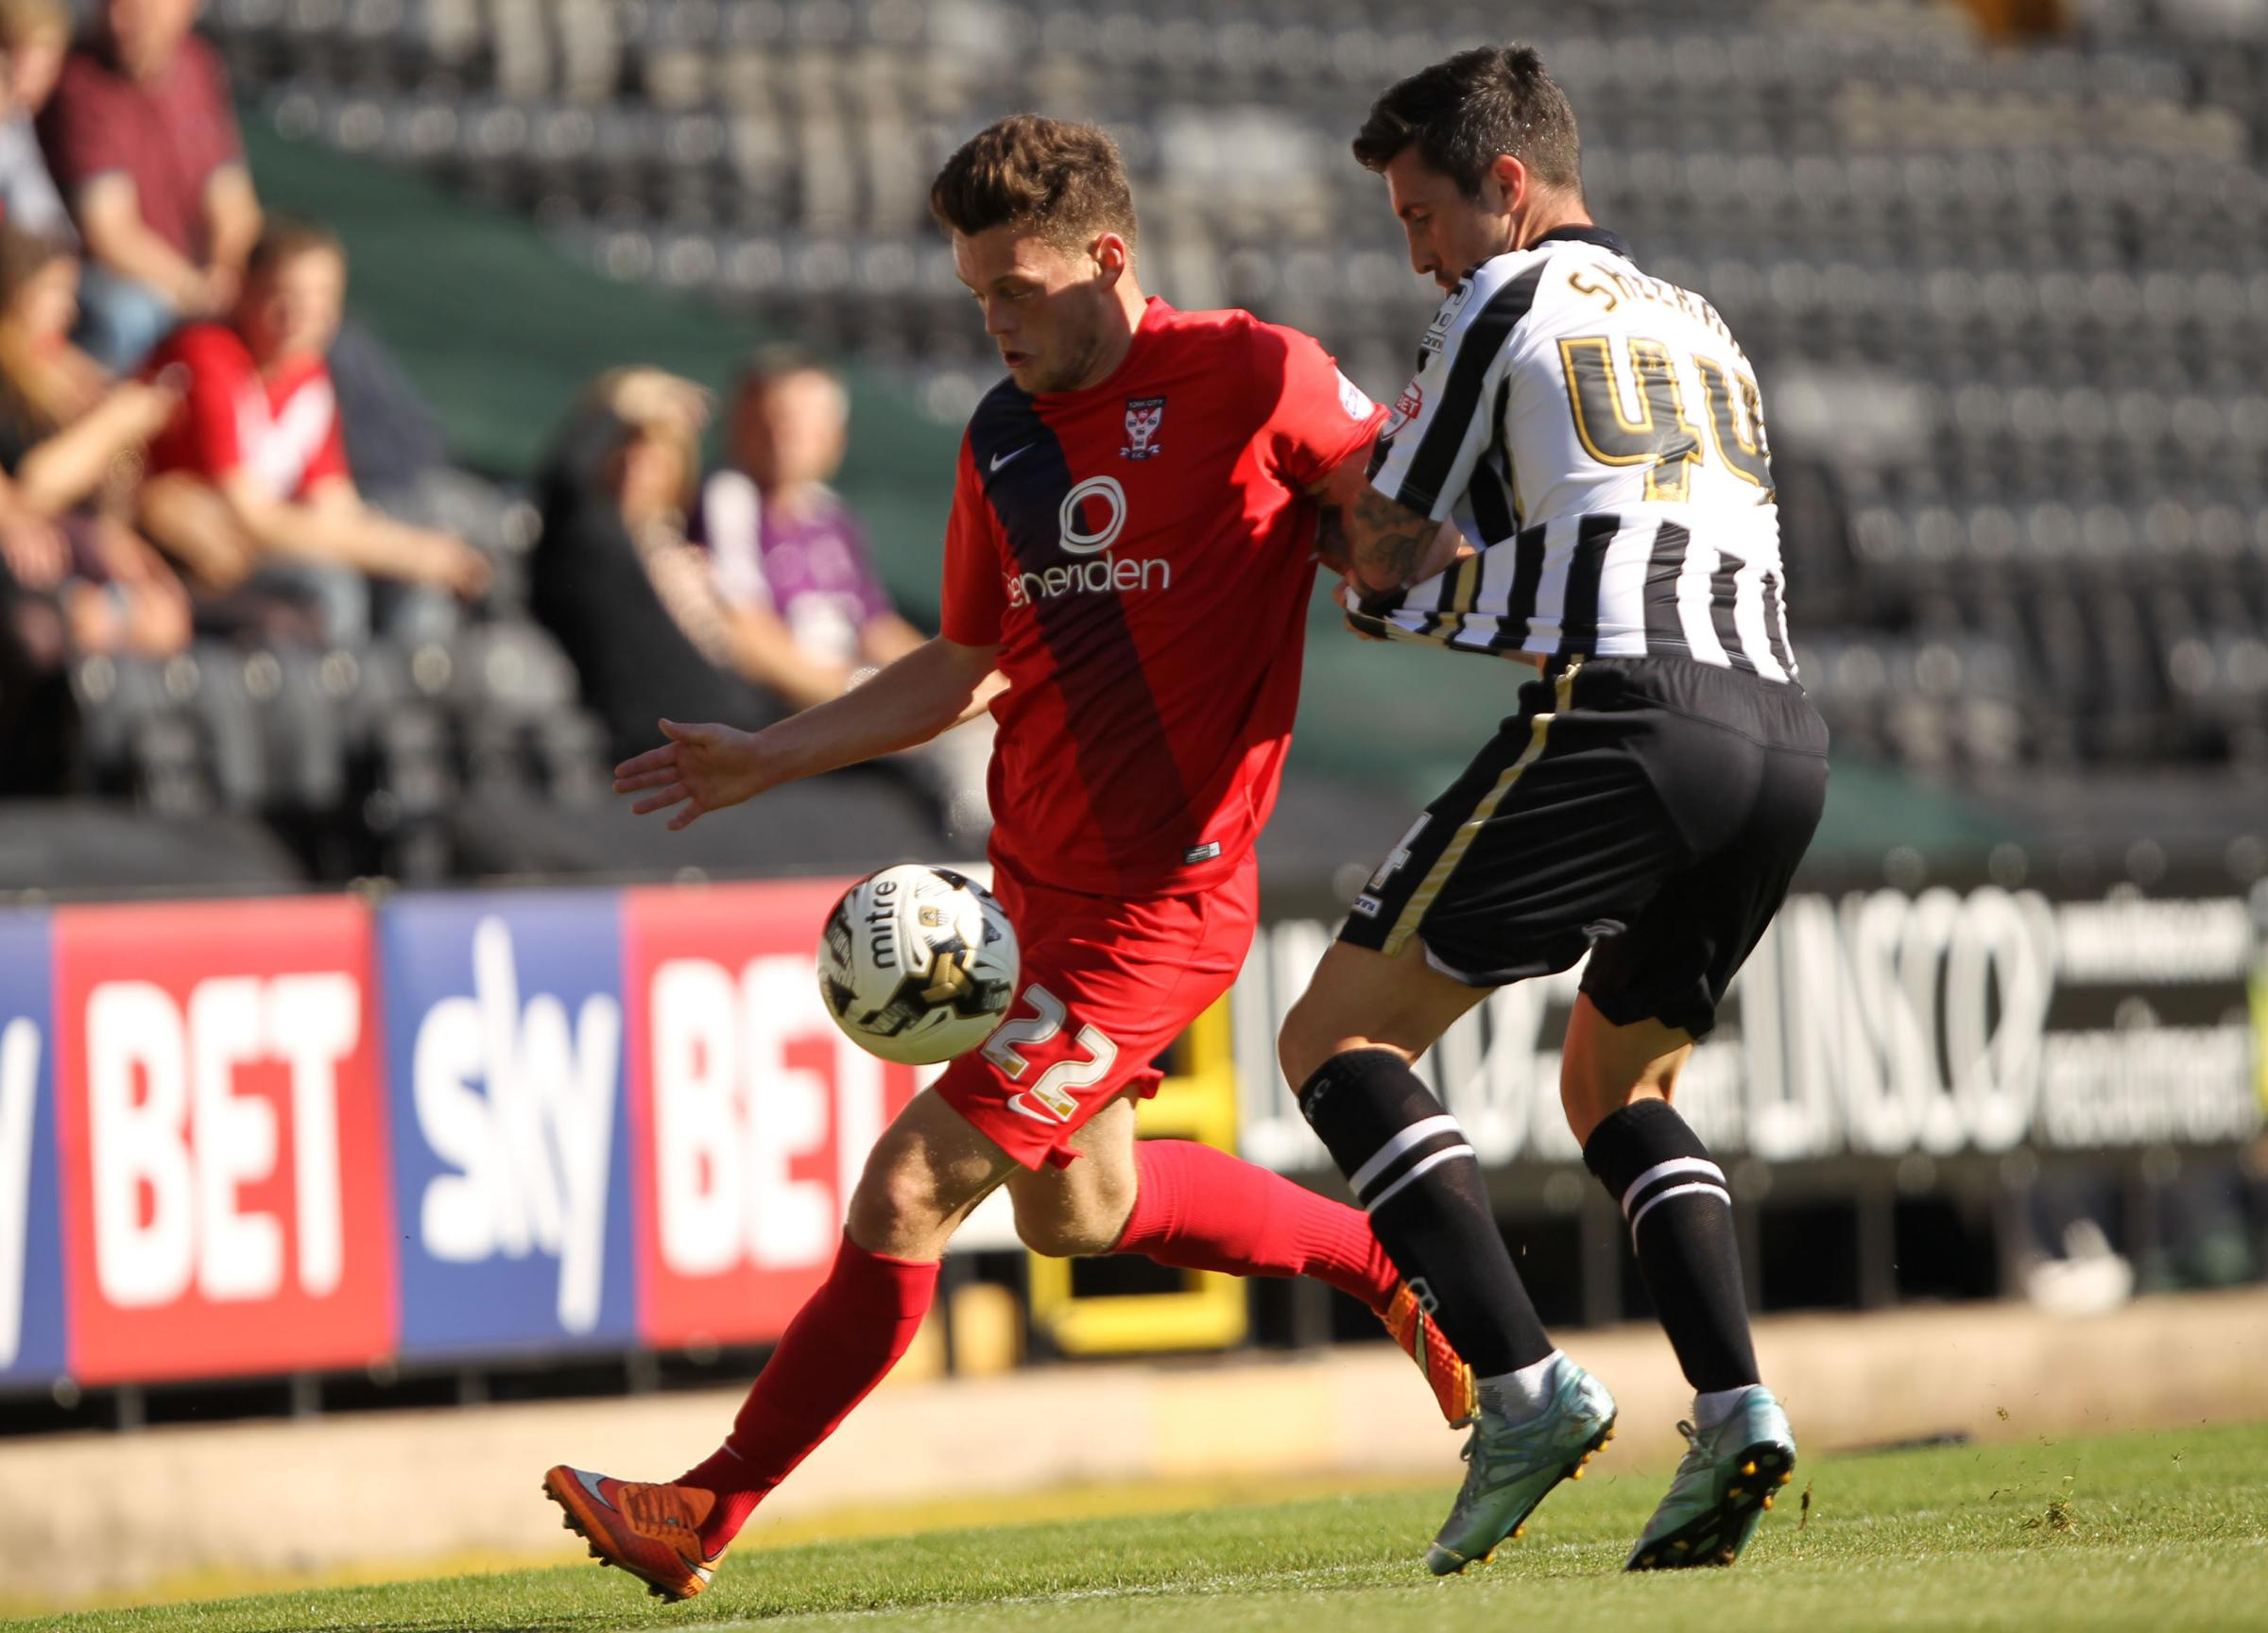 COUNTY SET: Alan Sheehan in action for Notts County against York striker Reece Thompson